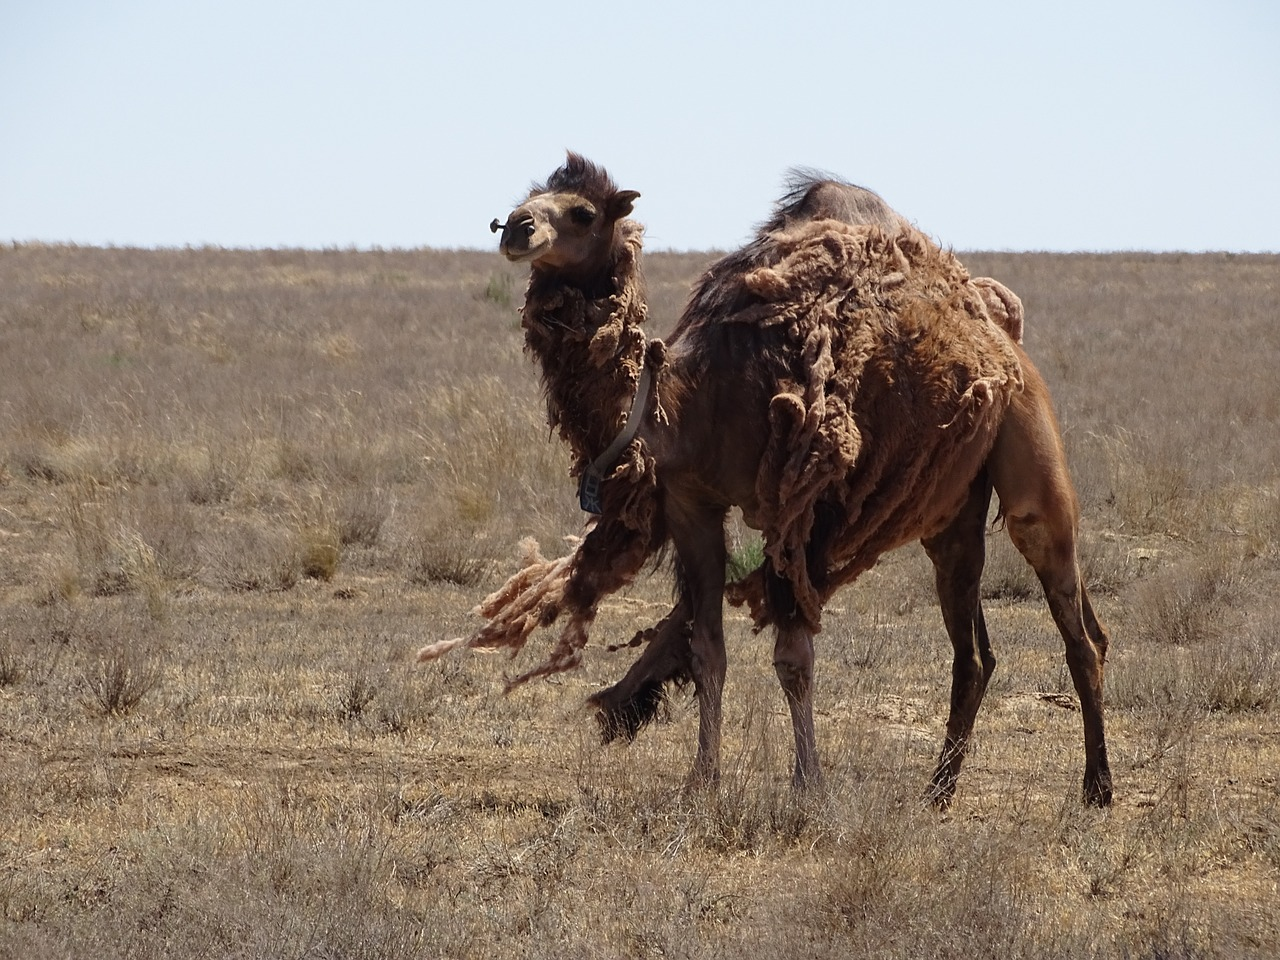 Wild Camels in the United States